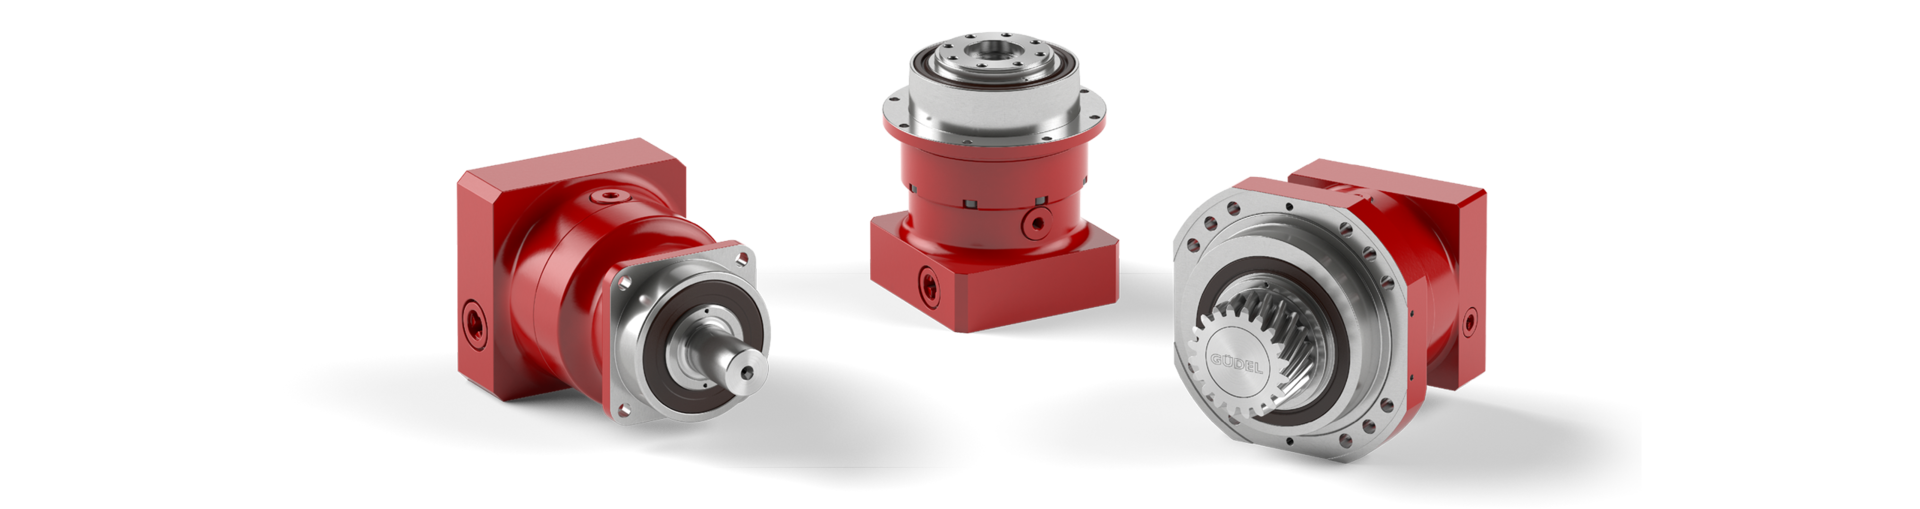 Planetary gear with optimized helical toothing | © Güdel Group AG